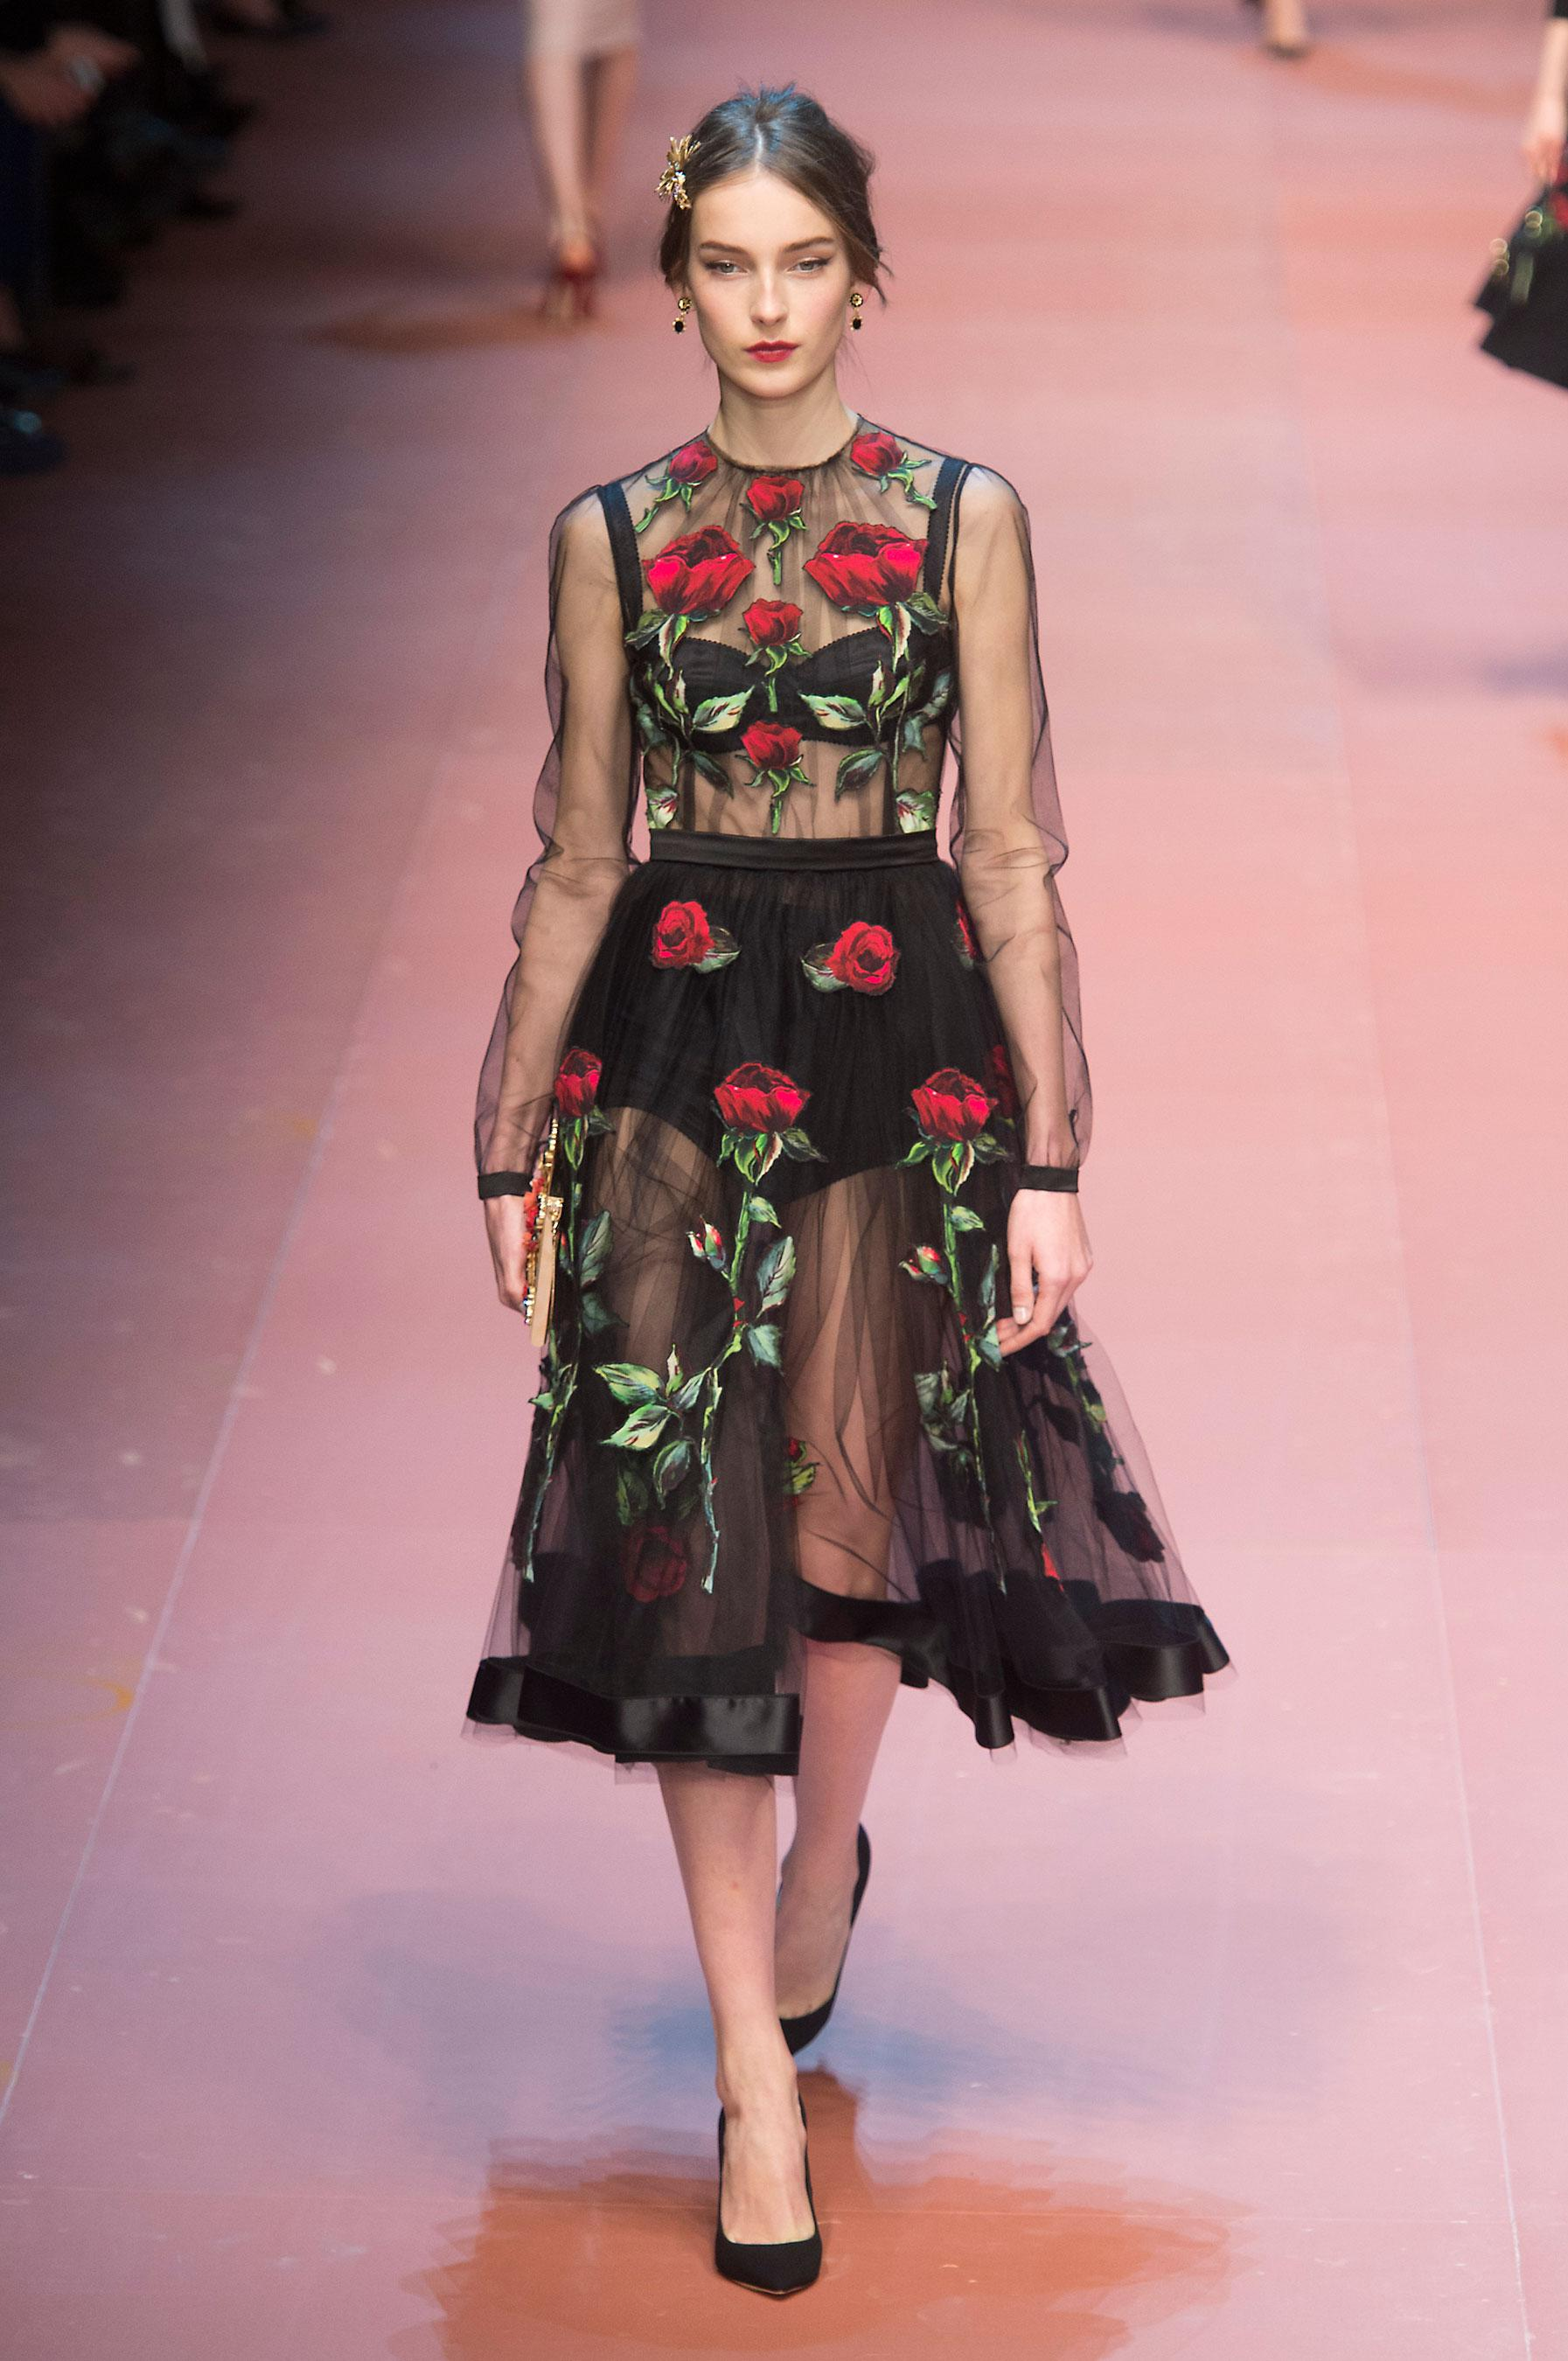 something fashion blogger, spain valencia, spring inspiration post, floral, alexander mcqueen flower dress 2007, interior design, tulips, seasonal inspo